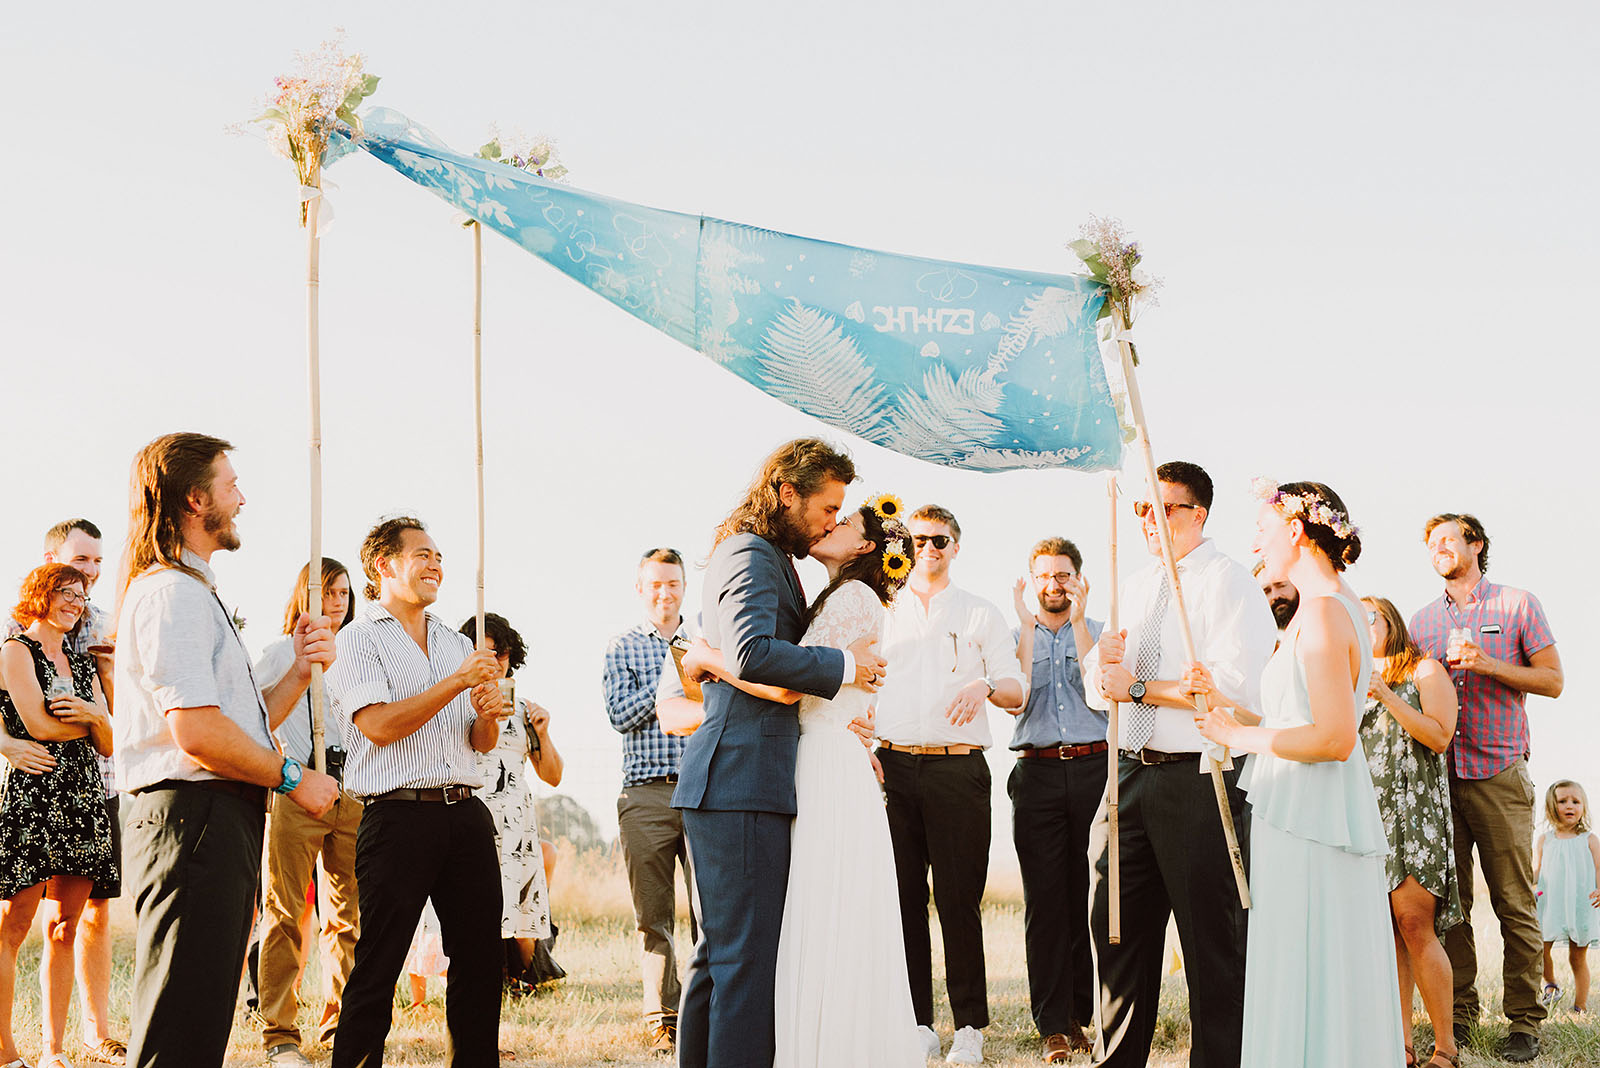 Bride and Groom's First Kiss under the chuppah | Sauvie Island Wedding